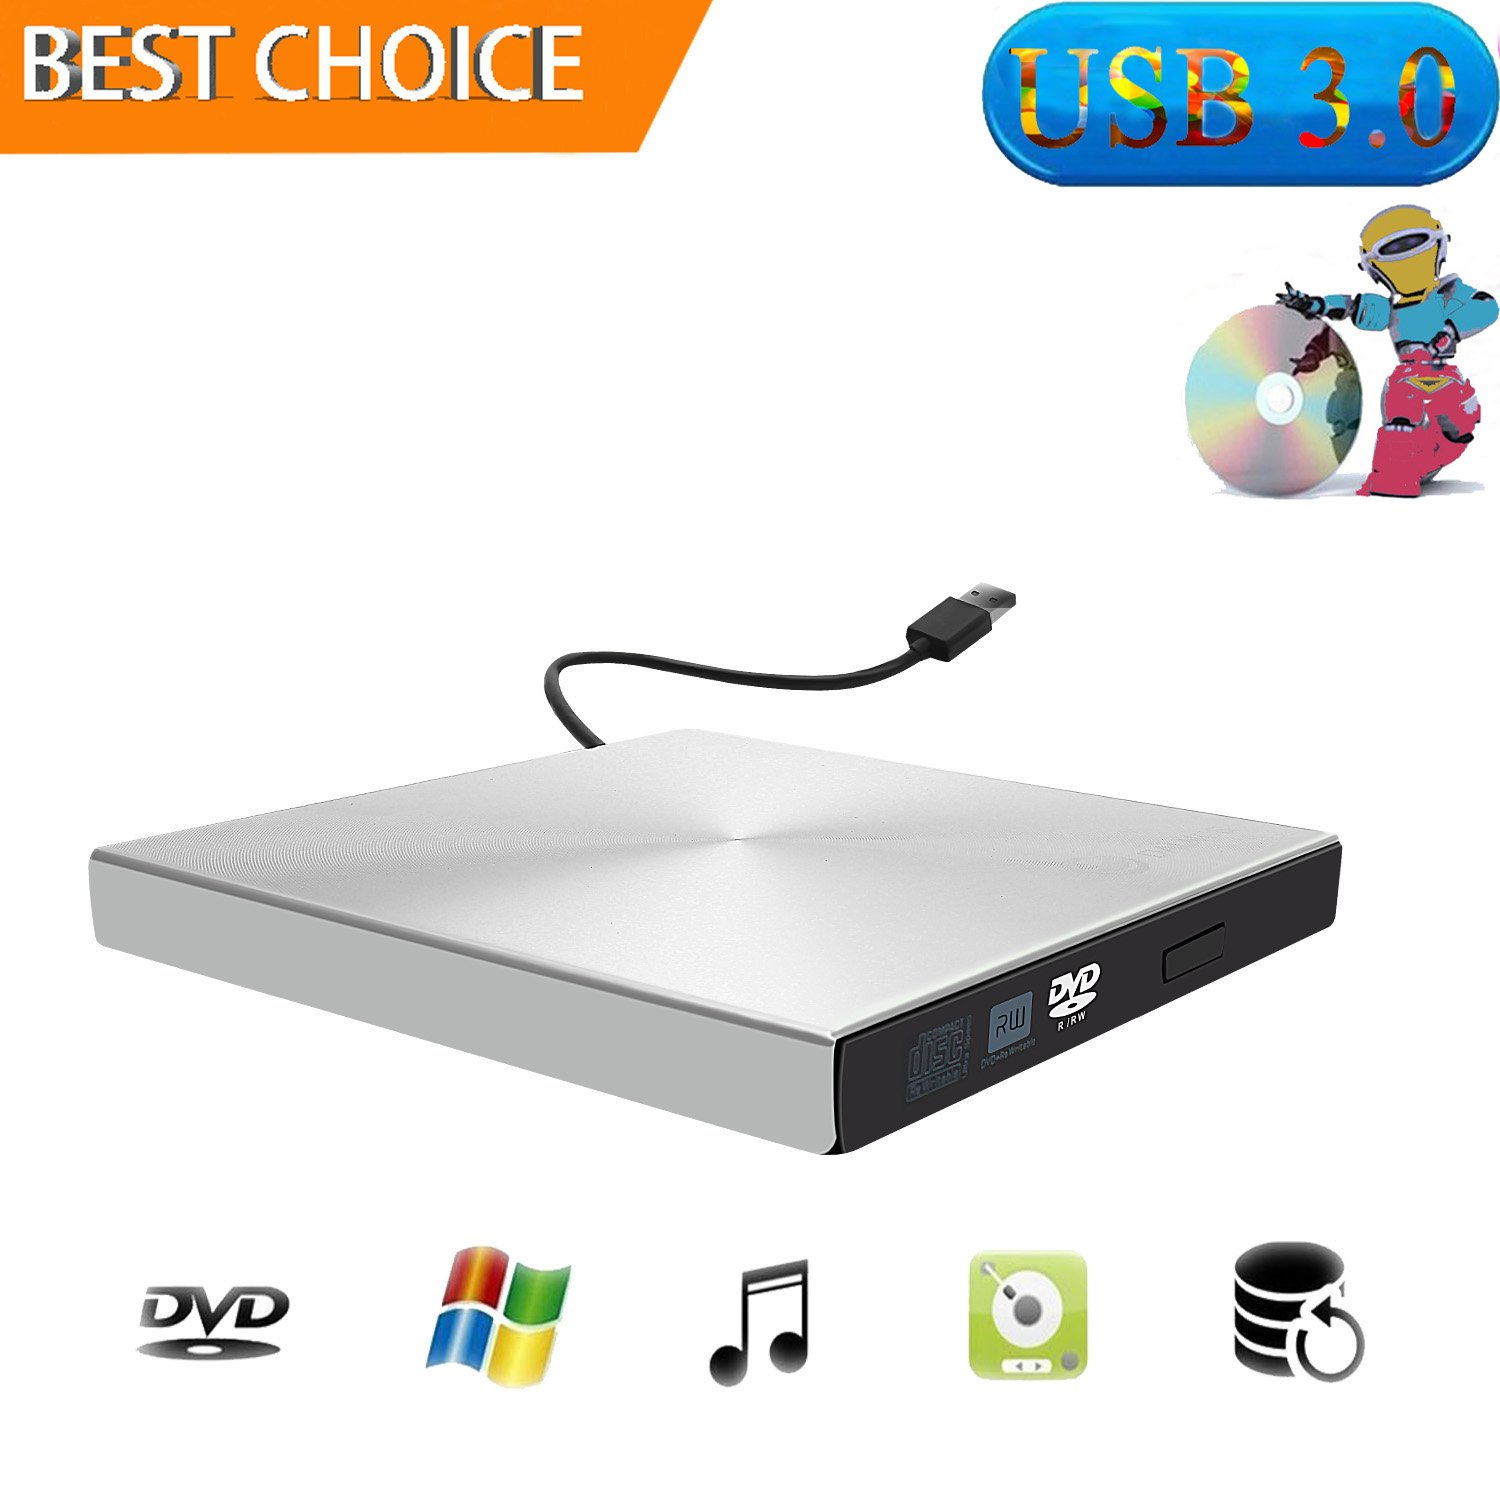 External CD Drive, USB 3.0 External DVD CD Drive Portable CD DVD +/-RW Drive Slim DVD/CD Rom Rewriter Burner Writer High Speed Data Transfer for Macbook Pro Laptop/Desktops Win 7/8.1/10/Linux OS/Vista